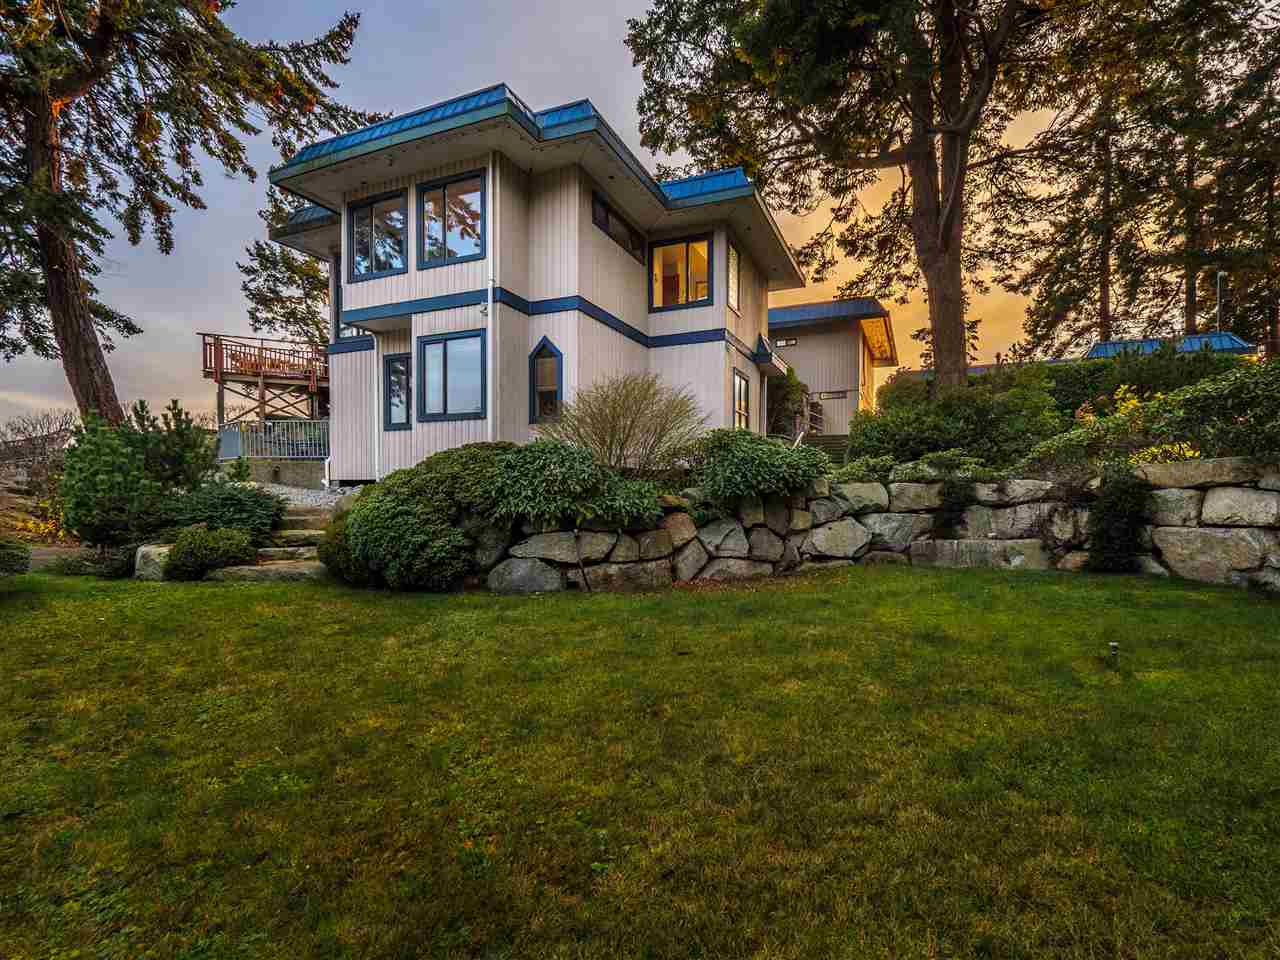 5482 HILL ROAD - Sechelt District House/Single Family for sale, 7 Bedrooms (R2519038) - #33